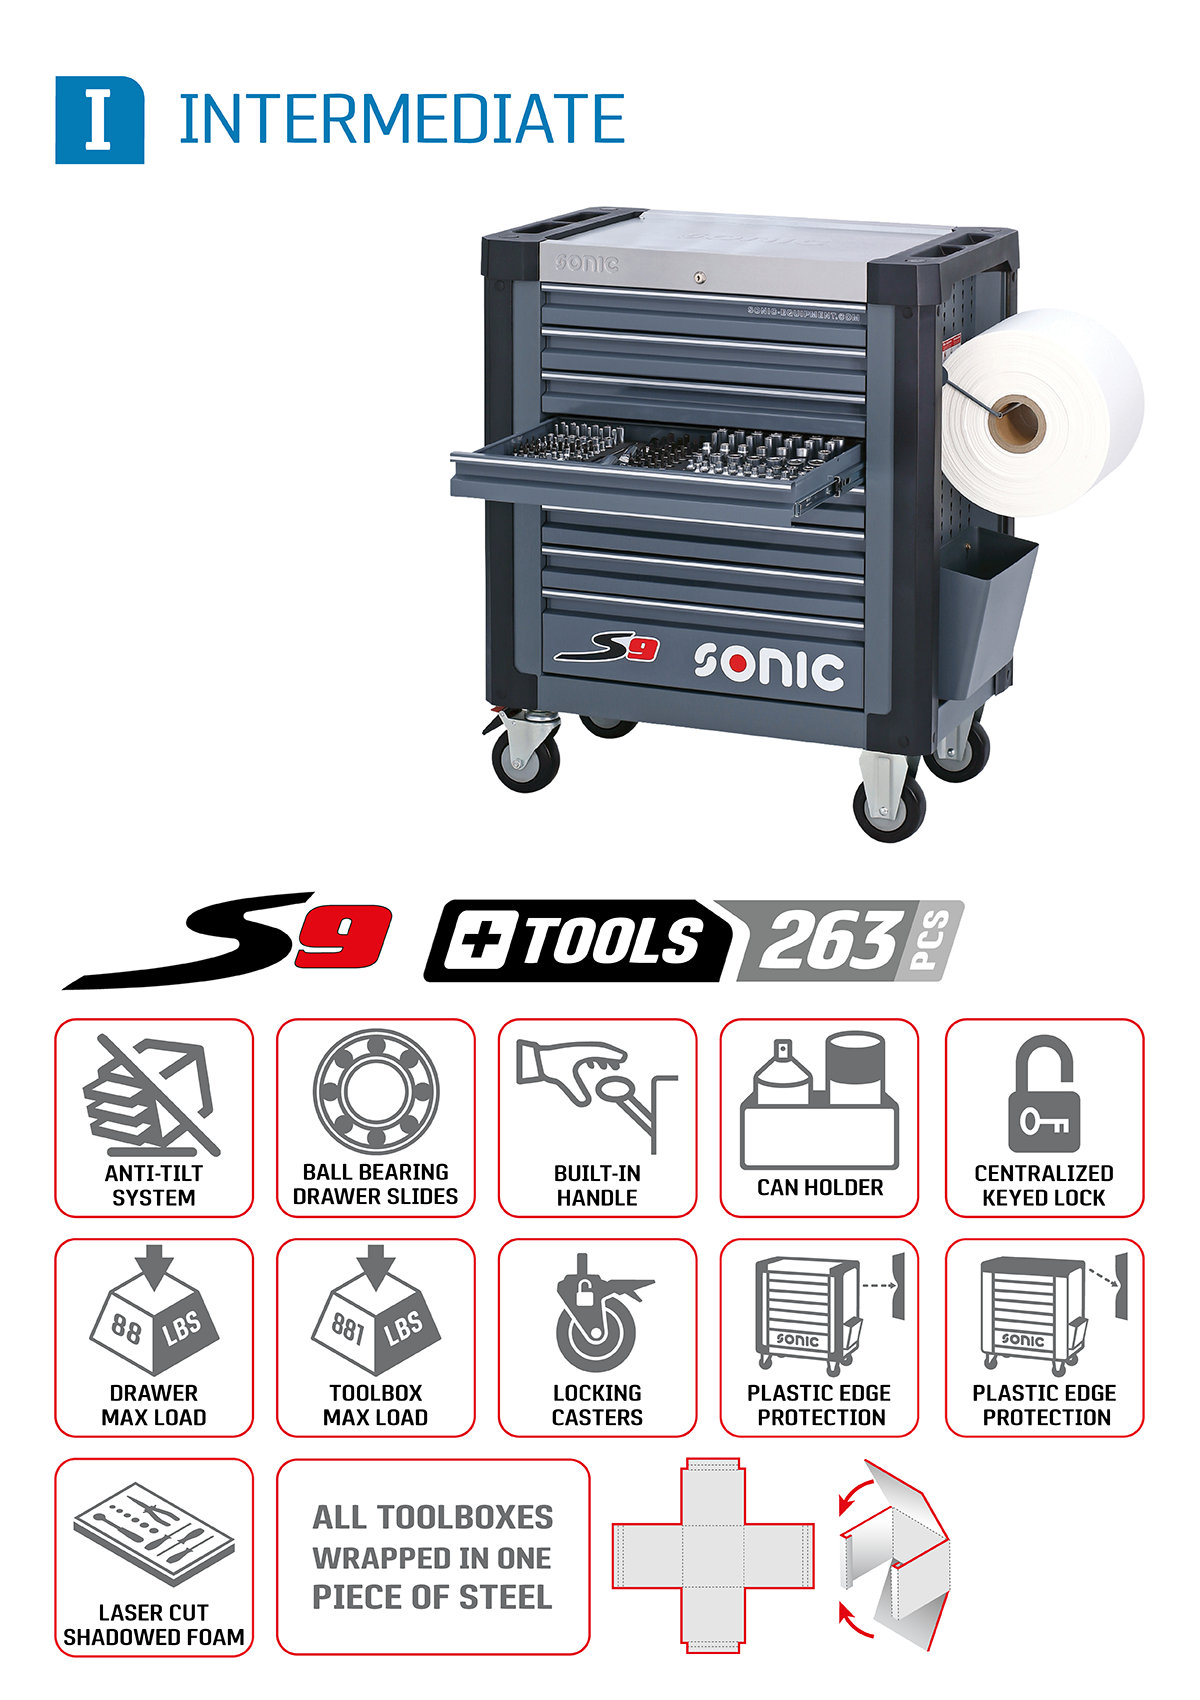 Sonic S9 + Tools 263 piece intermediate aviation toolbox